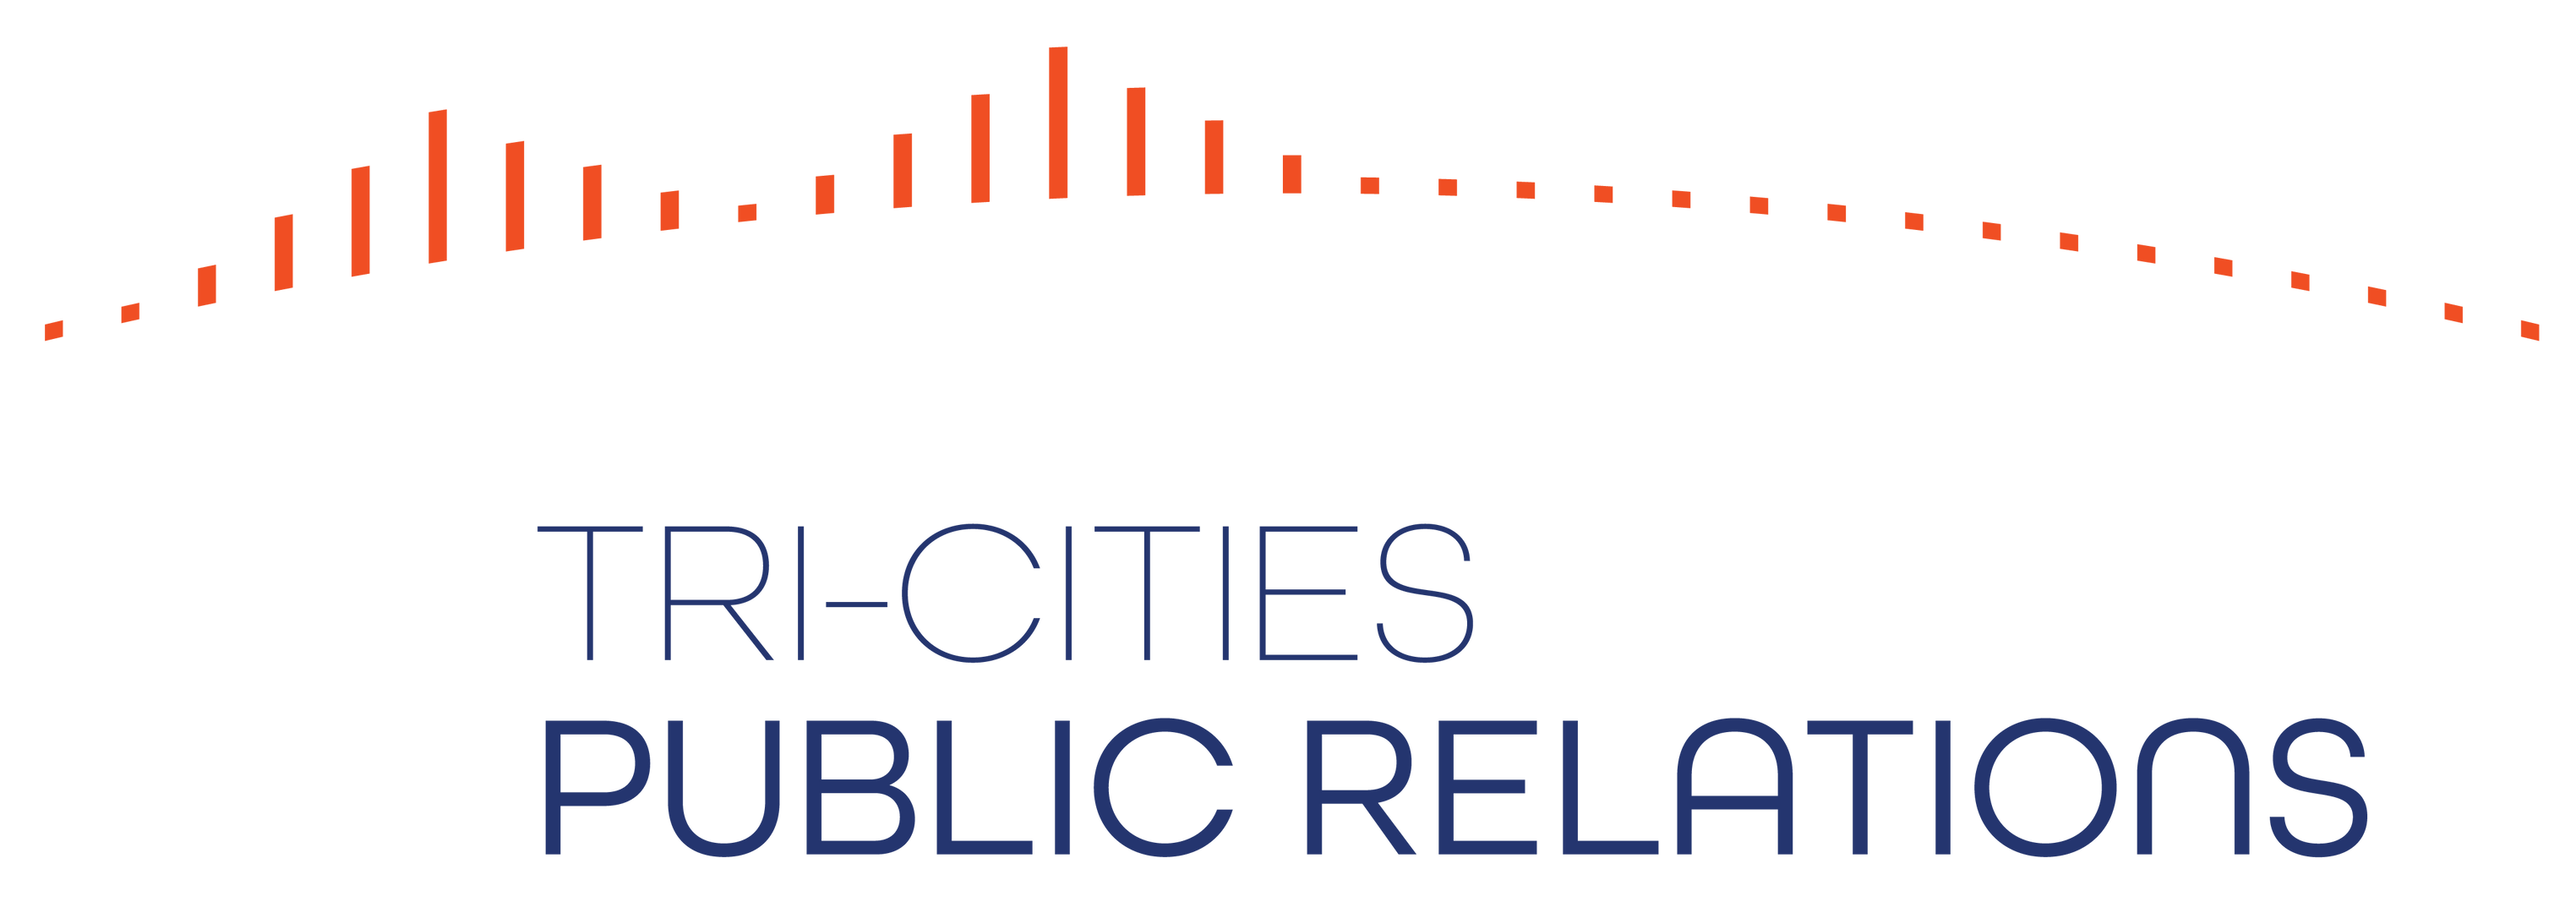 TCri-Cities Public Relations, Richland, WA